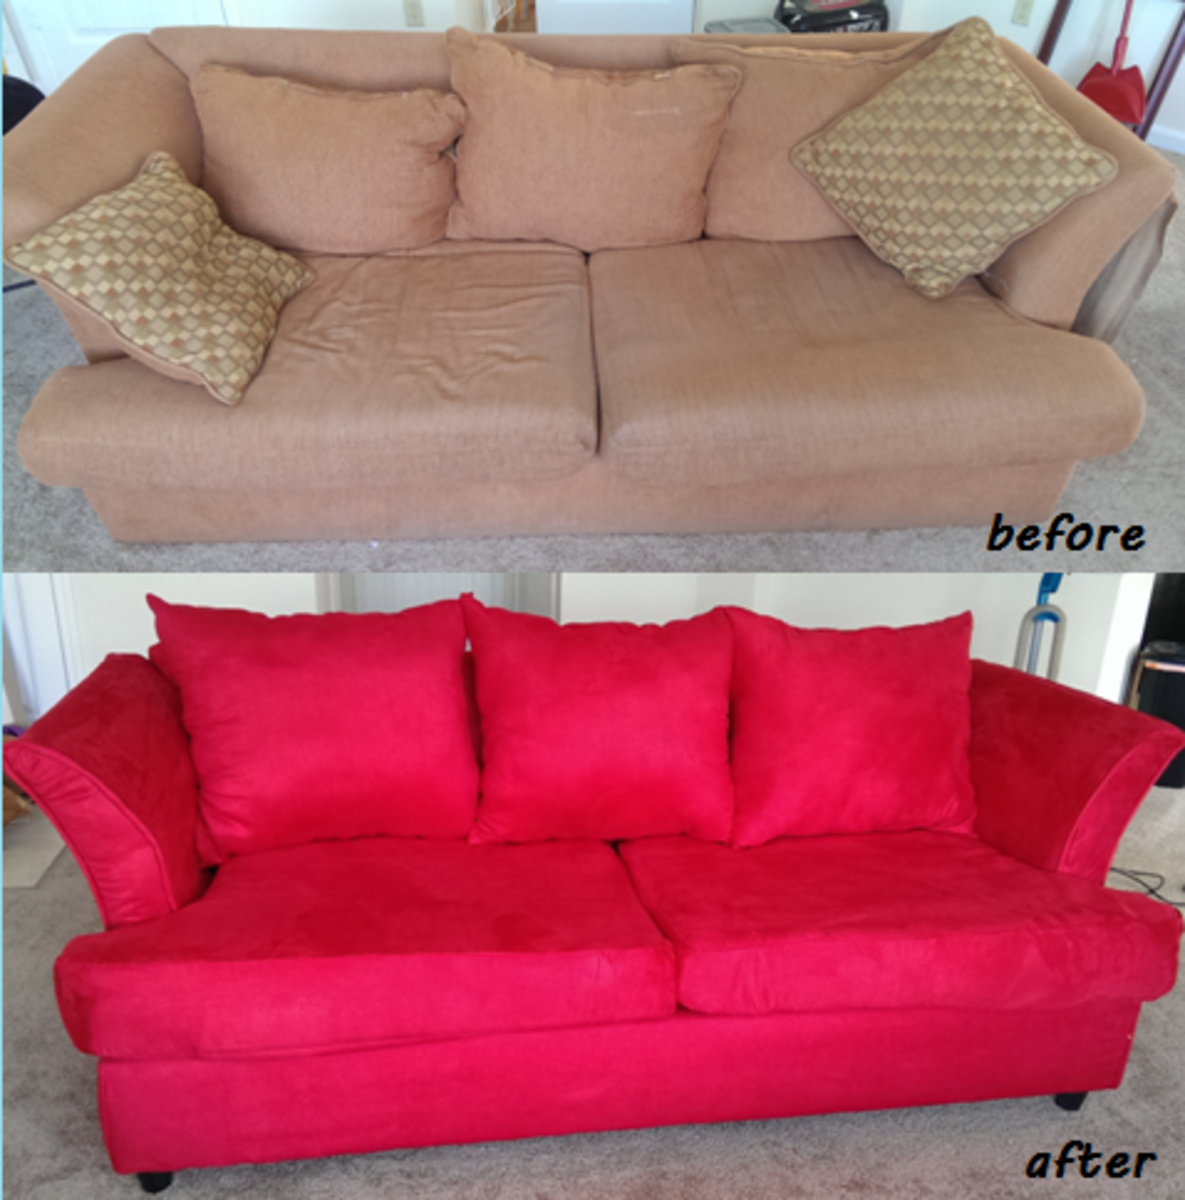 And here's the before and after comparison!